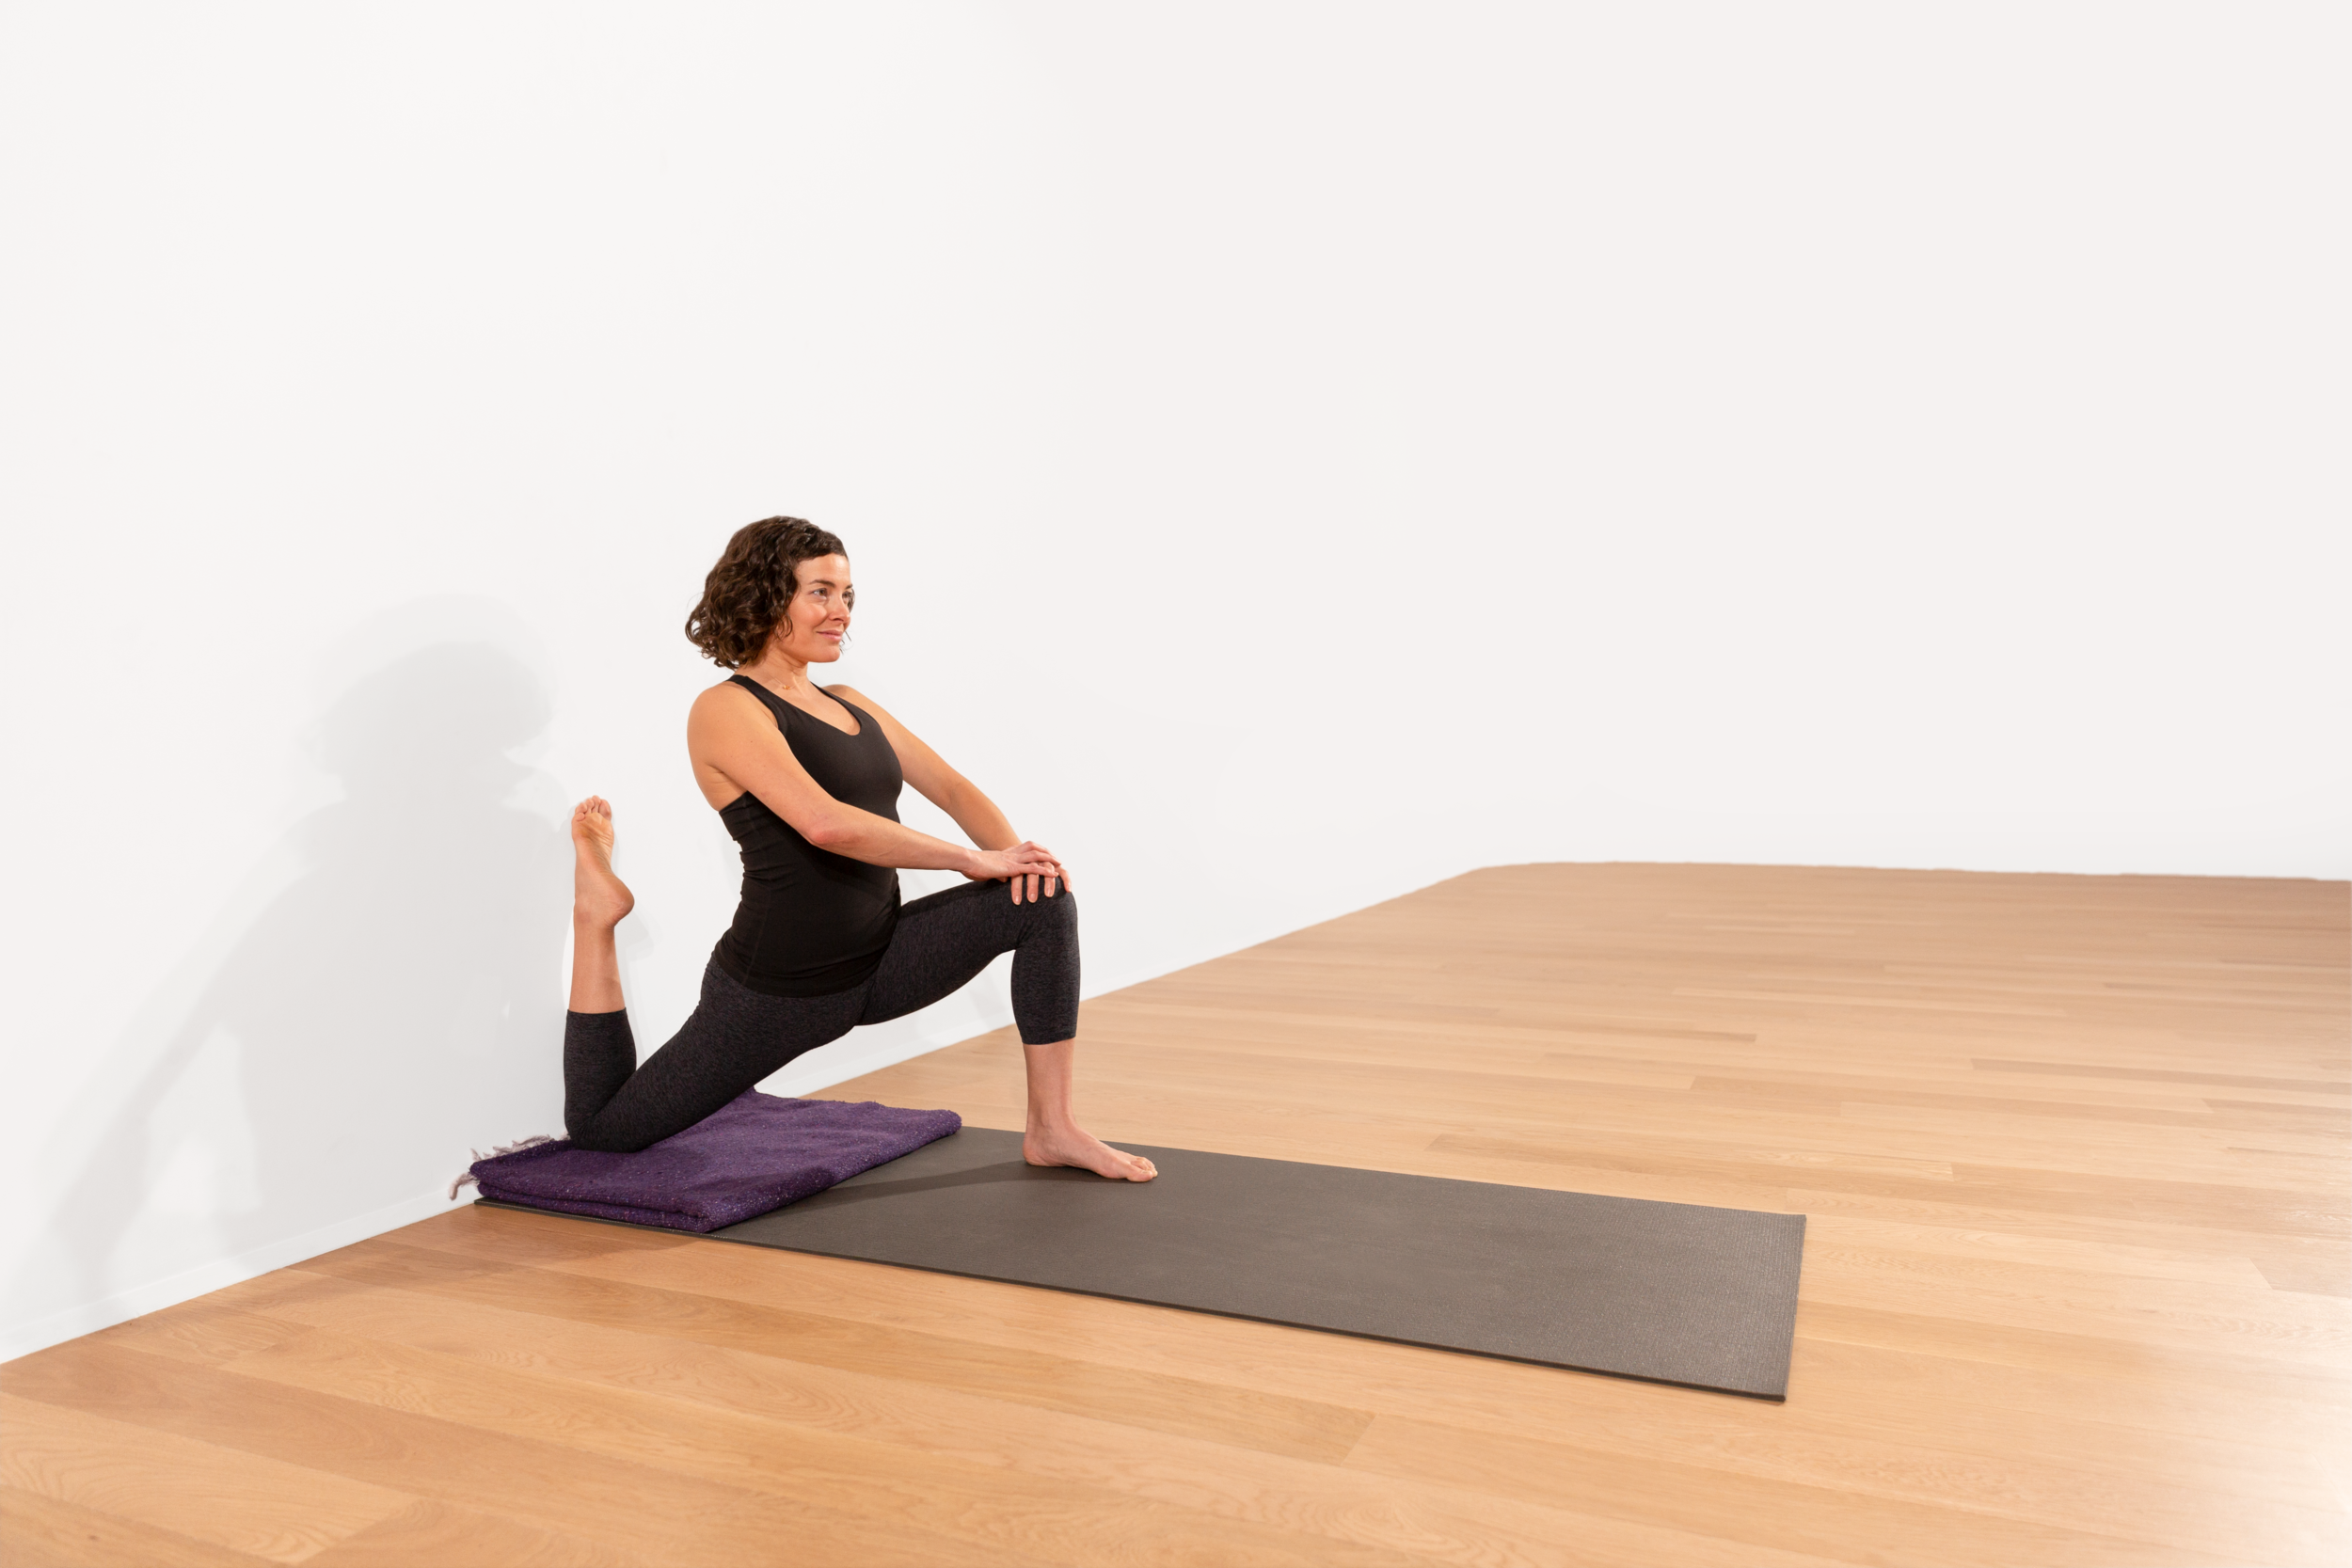 Poses that open the quads and hip flexors should be practiced almost daily if you want to have a wheel pose that doesn't feel gripped with tightness!